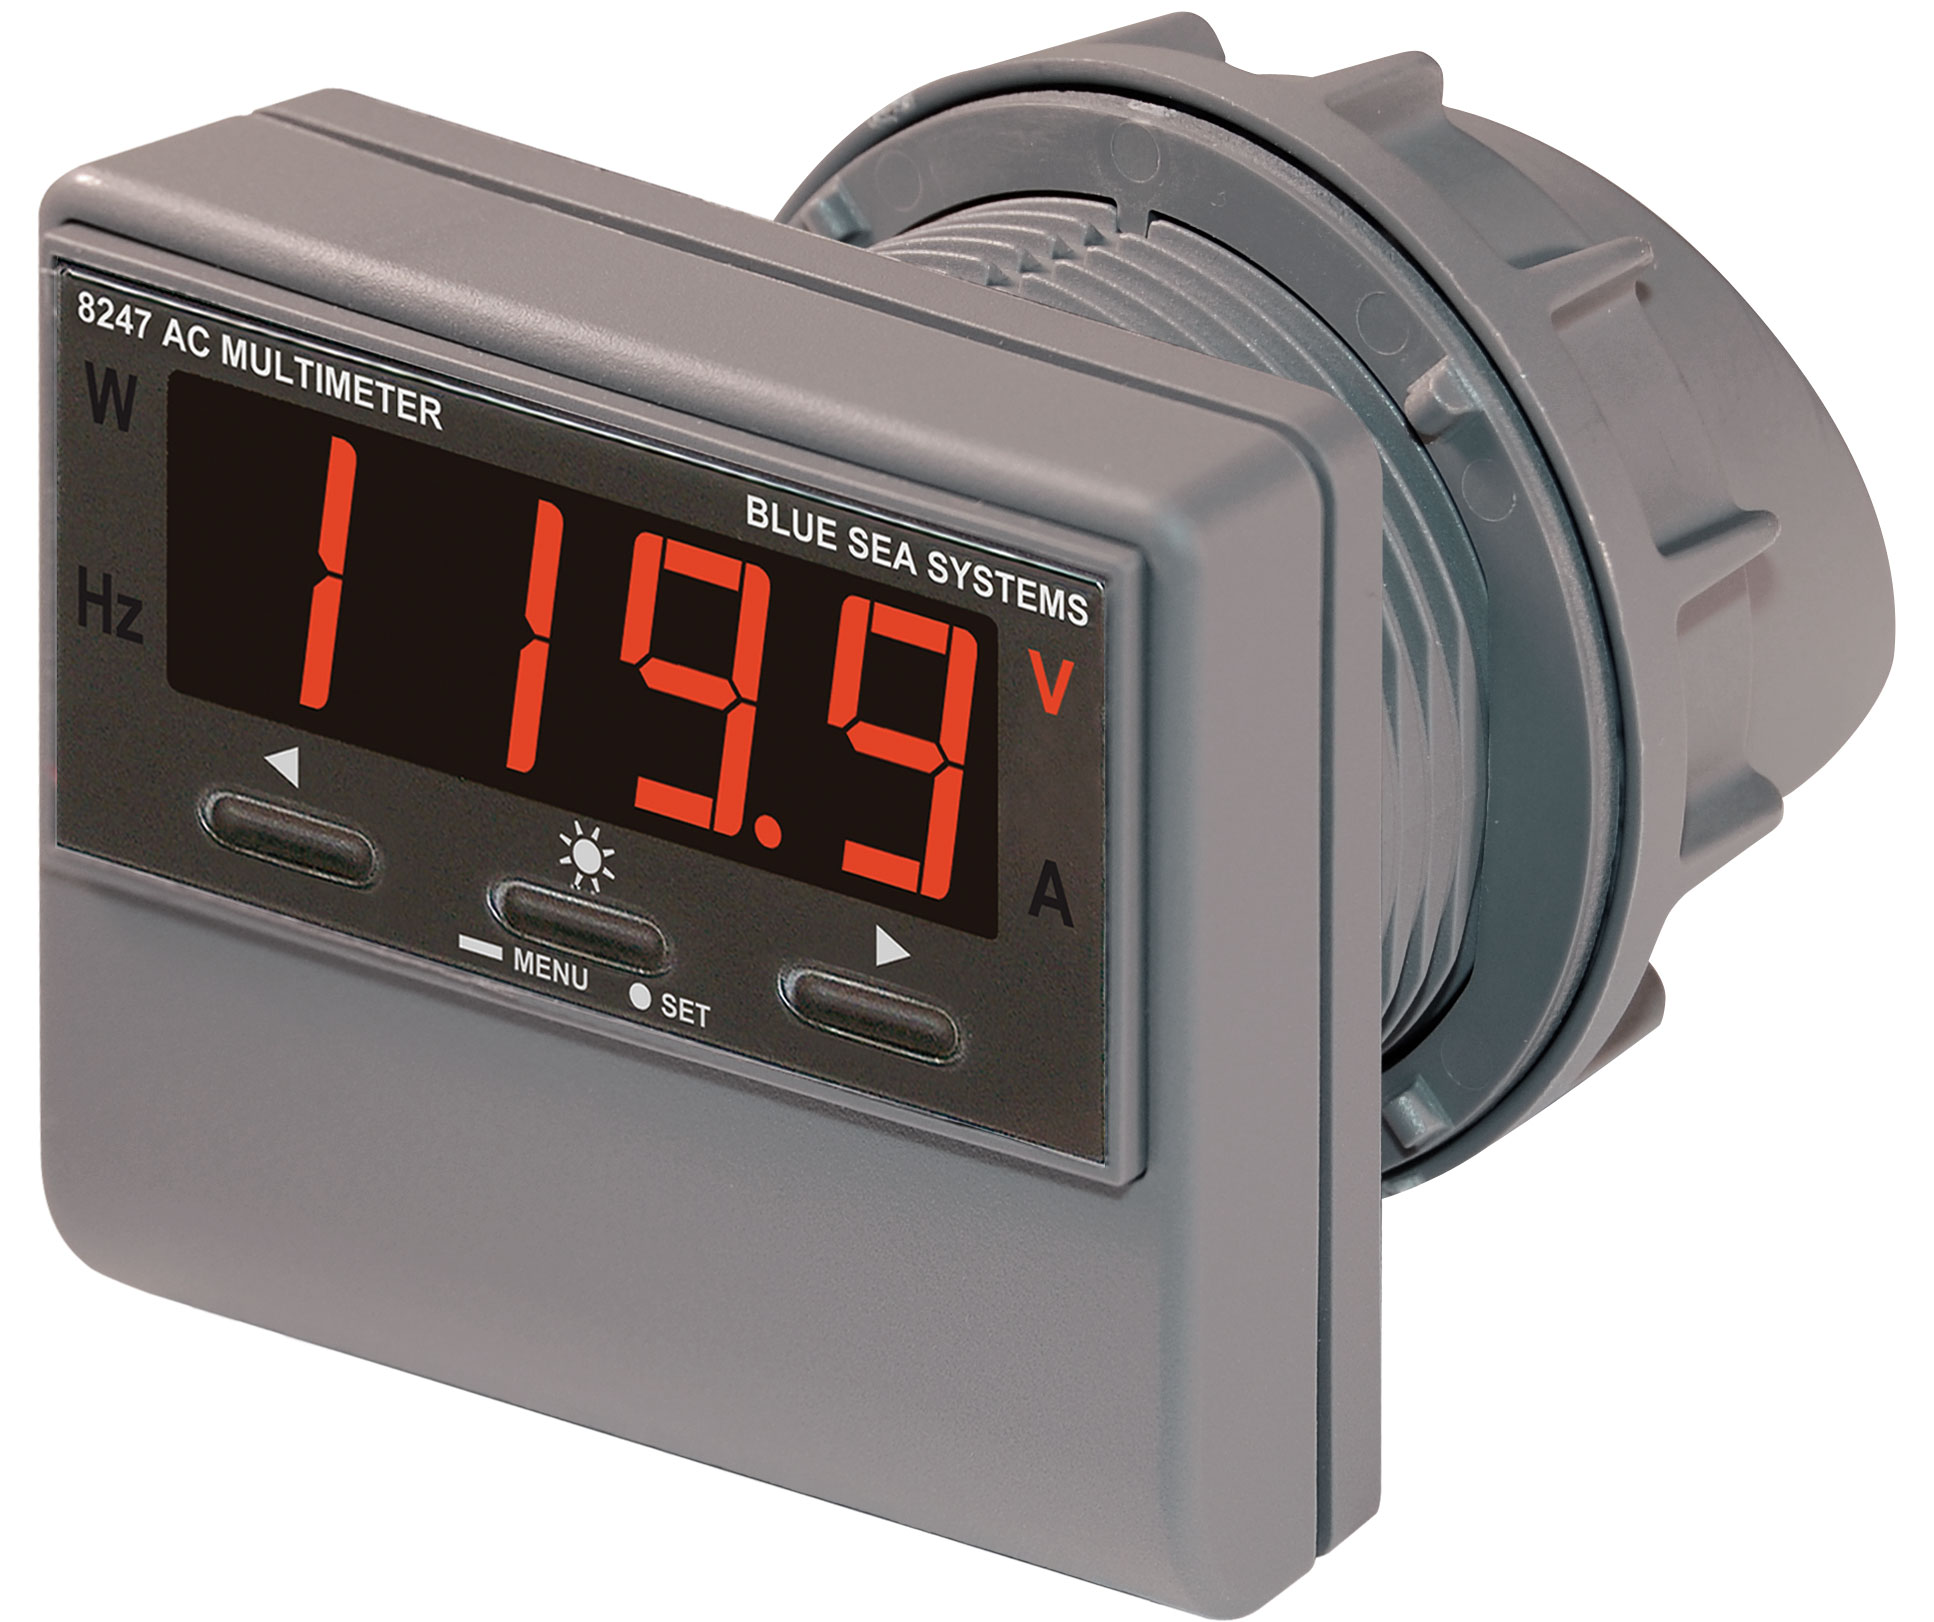 Multifunction Meter Front View : Ac digital multi function meter with alarm blue sea systems